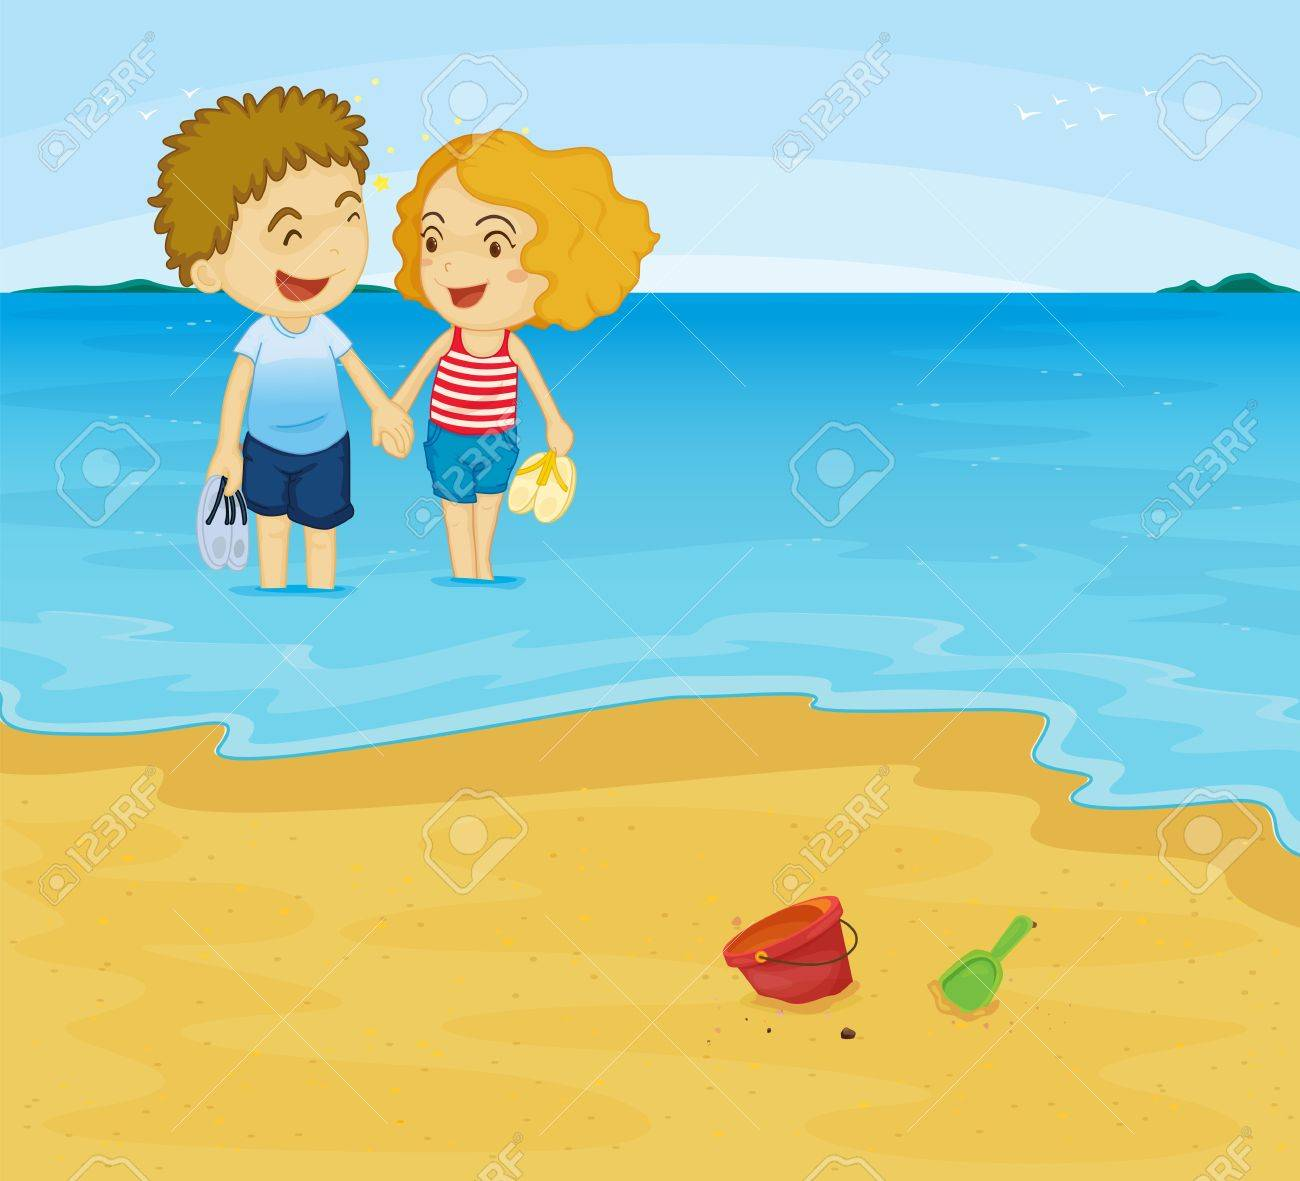 Illustration of romantic couple in water Stock Vector - 13059601